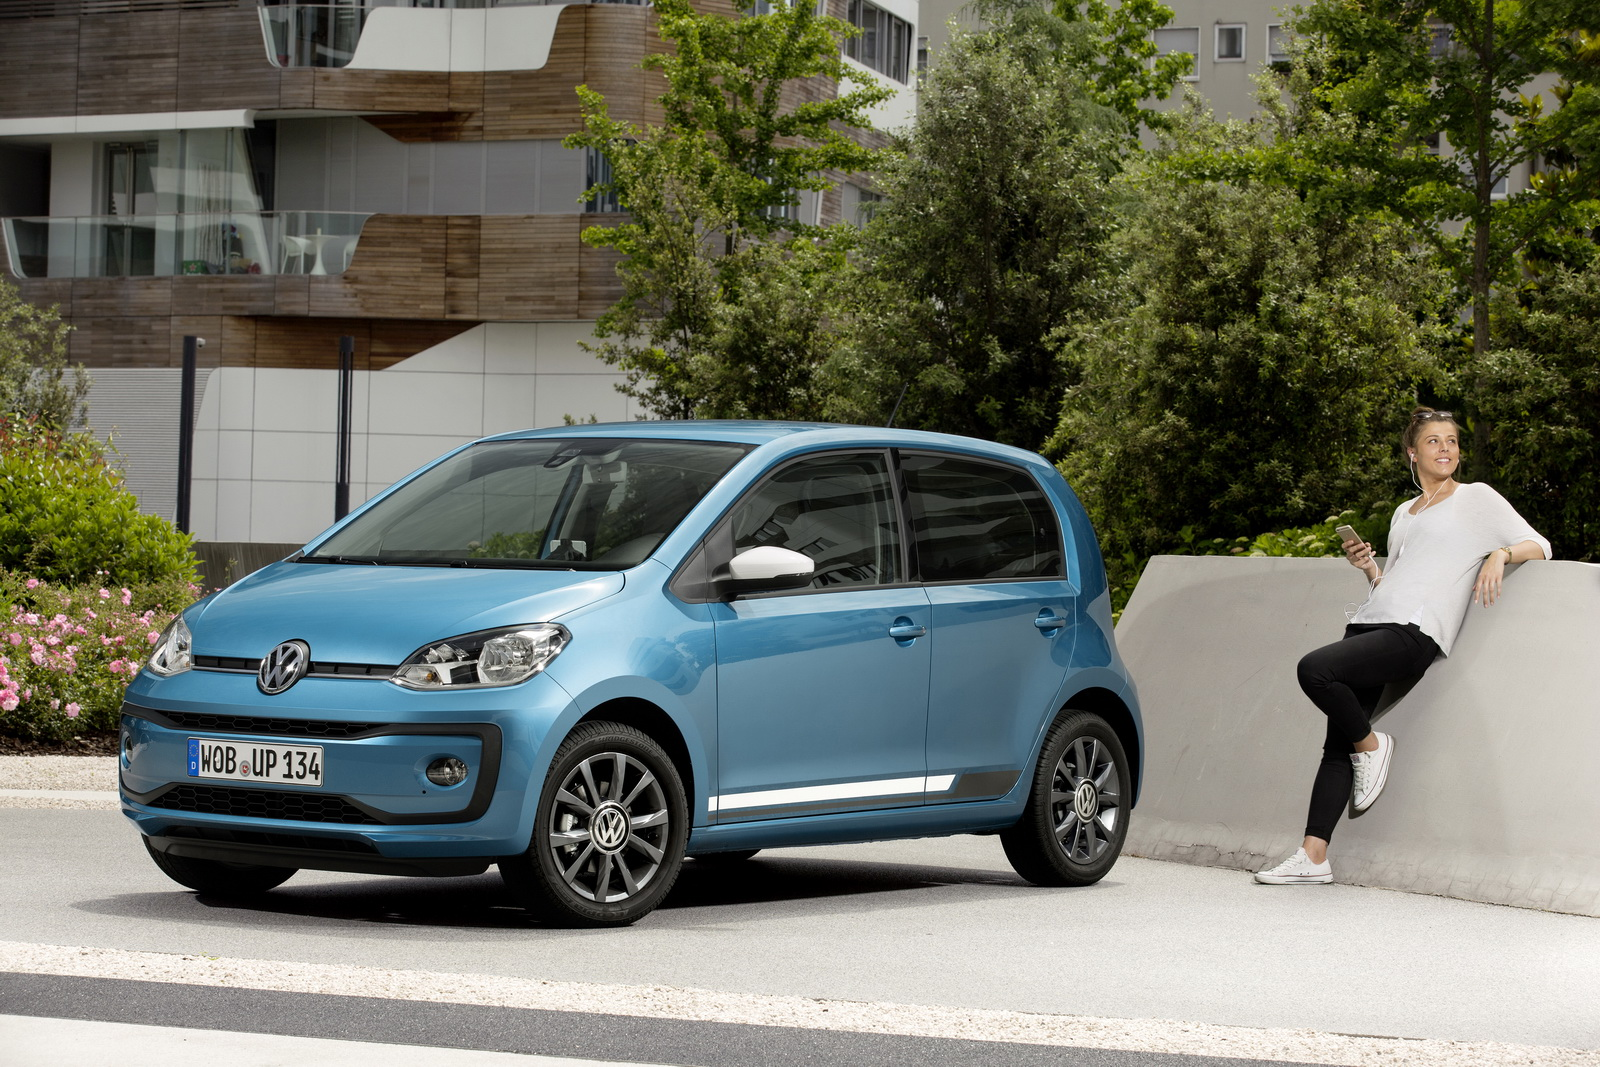 vw launches facelifted up city car including sporty 89hp turbo 51 pics. Black Bedroom Furniture Sets. Home Design Ideas